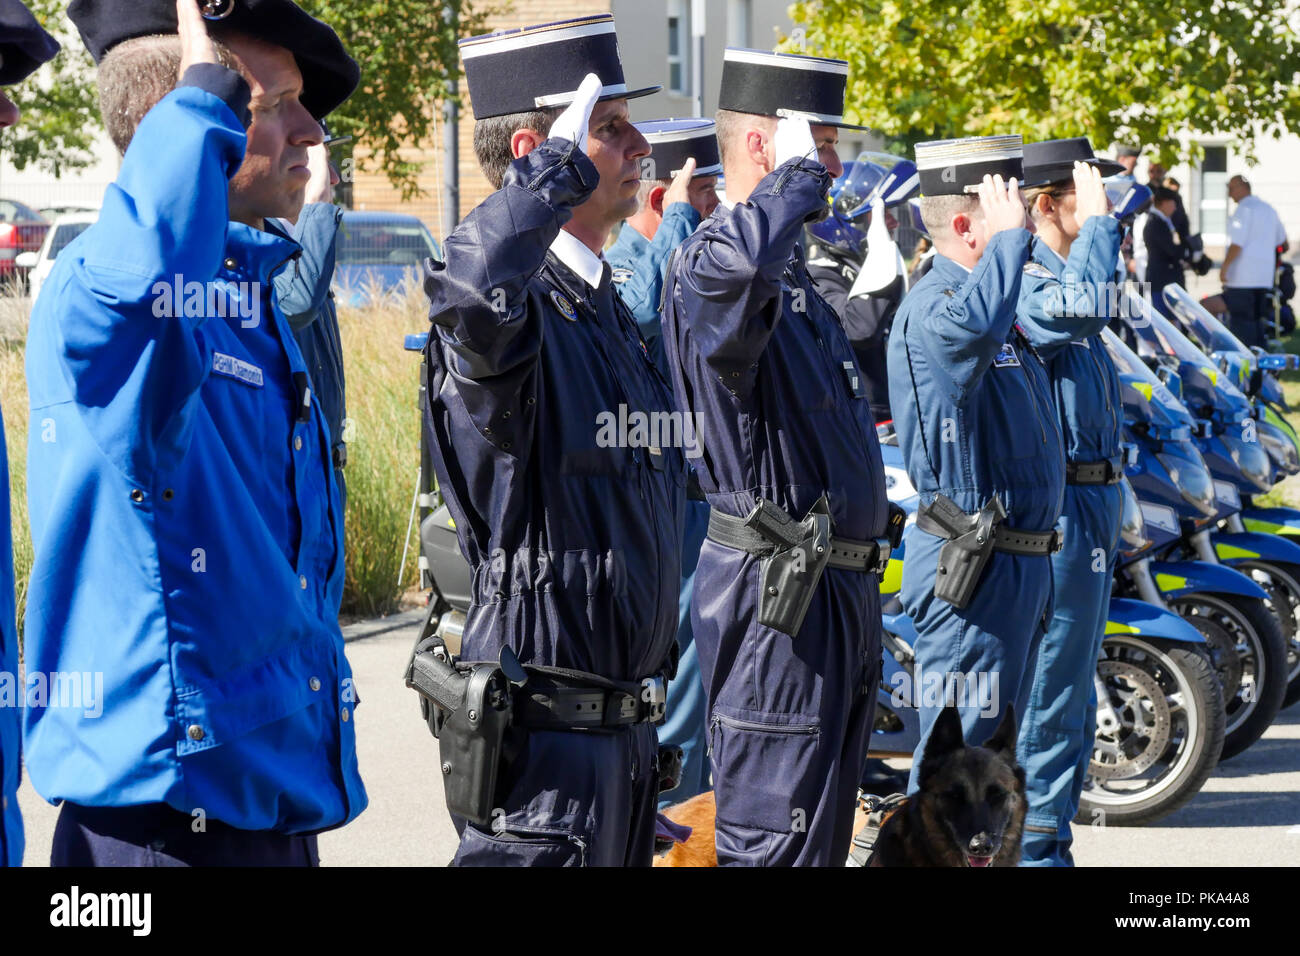 French Gendarmes attend official military ceremony, Sathonay-Camp, France - Stock Image